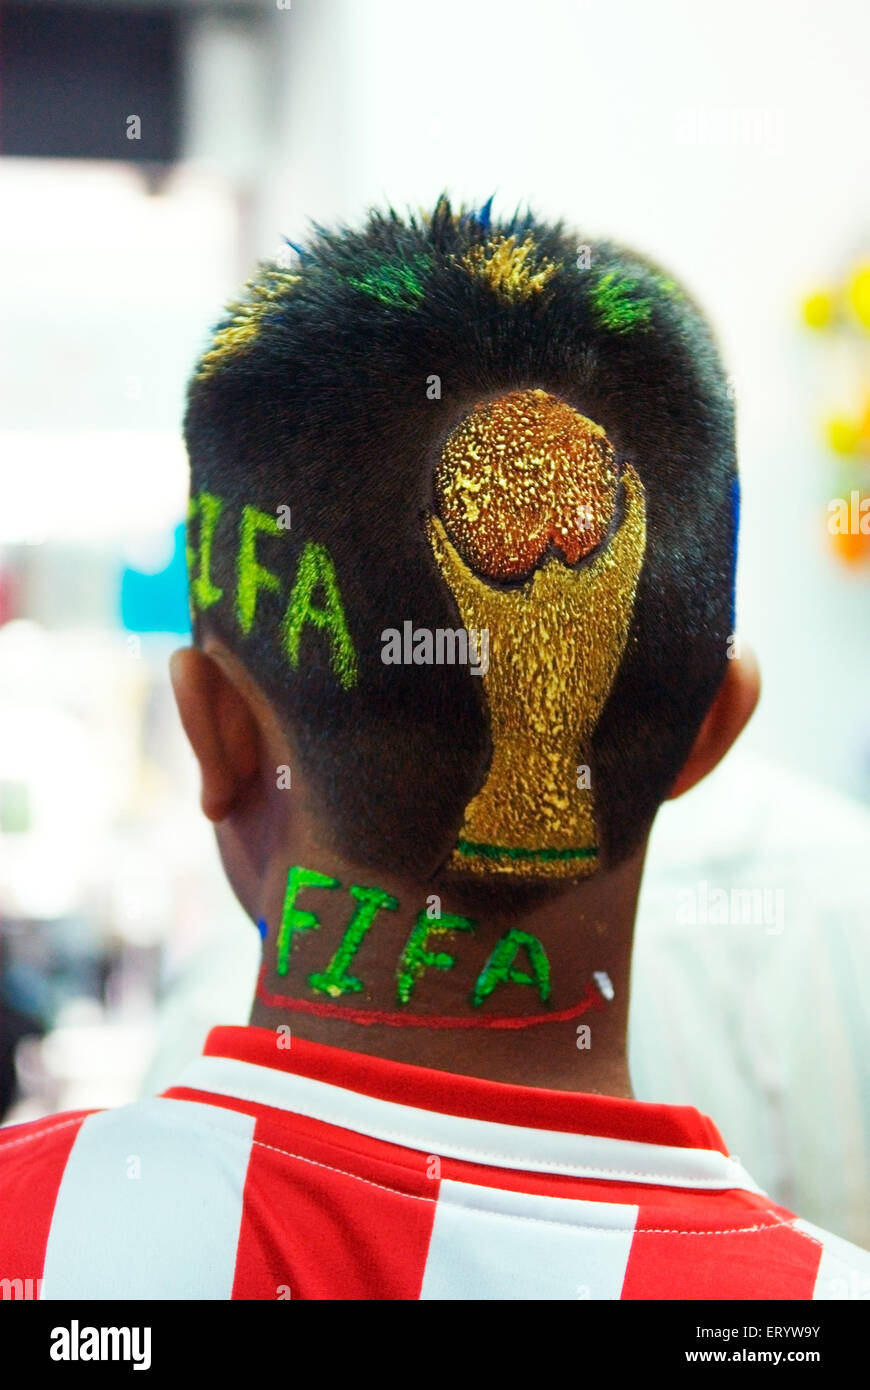 Football fan with trendy haircut during FIFA worldcup - aum 175646 - Stock Image